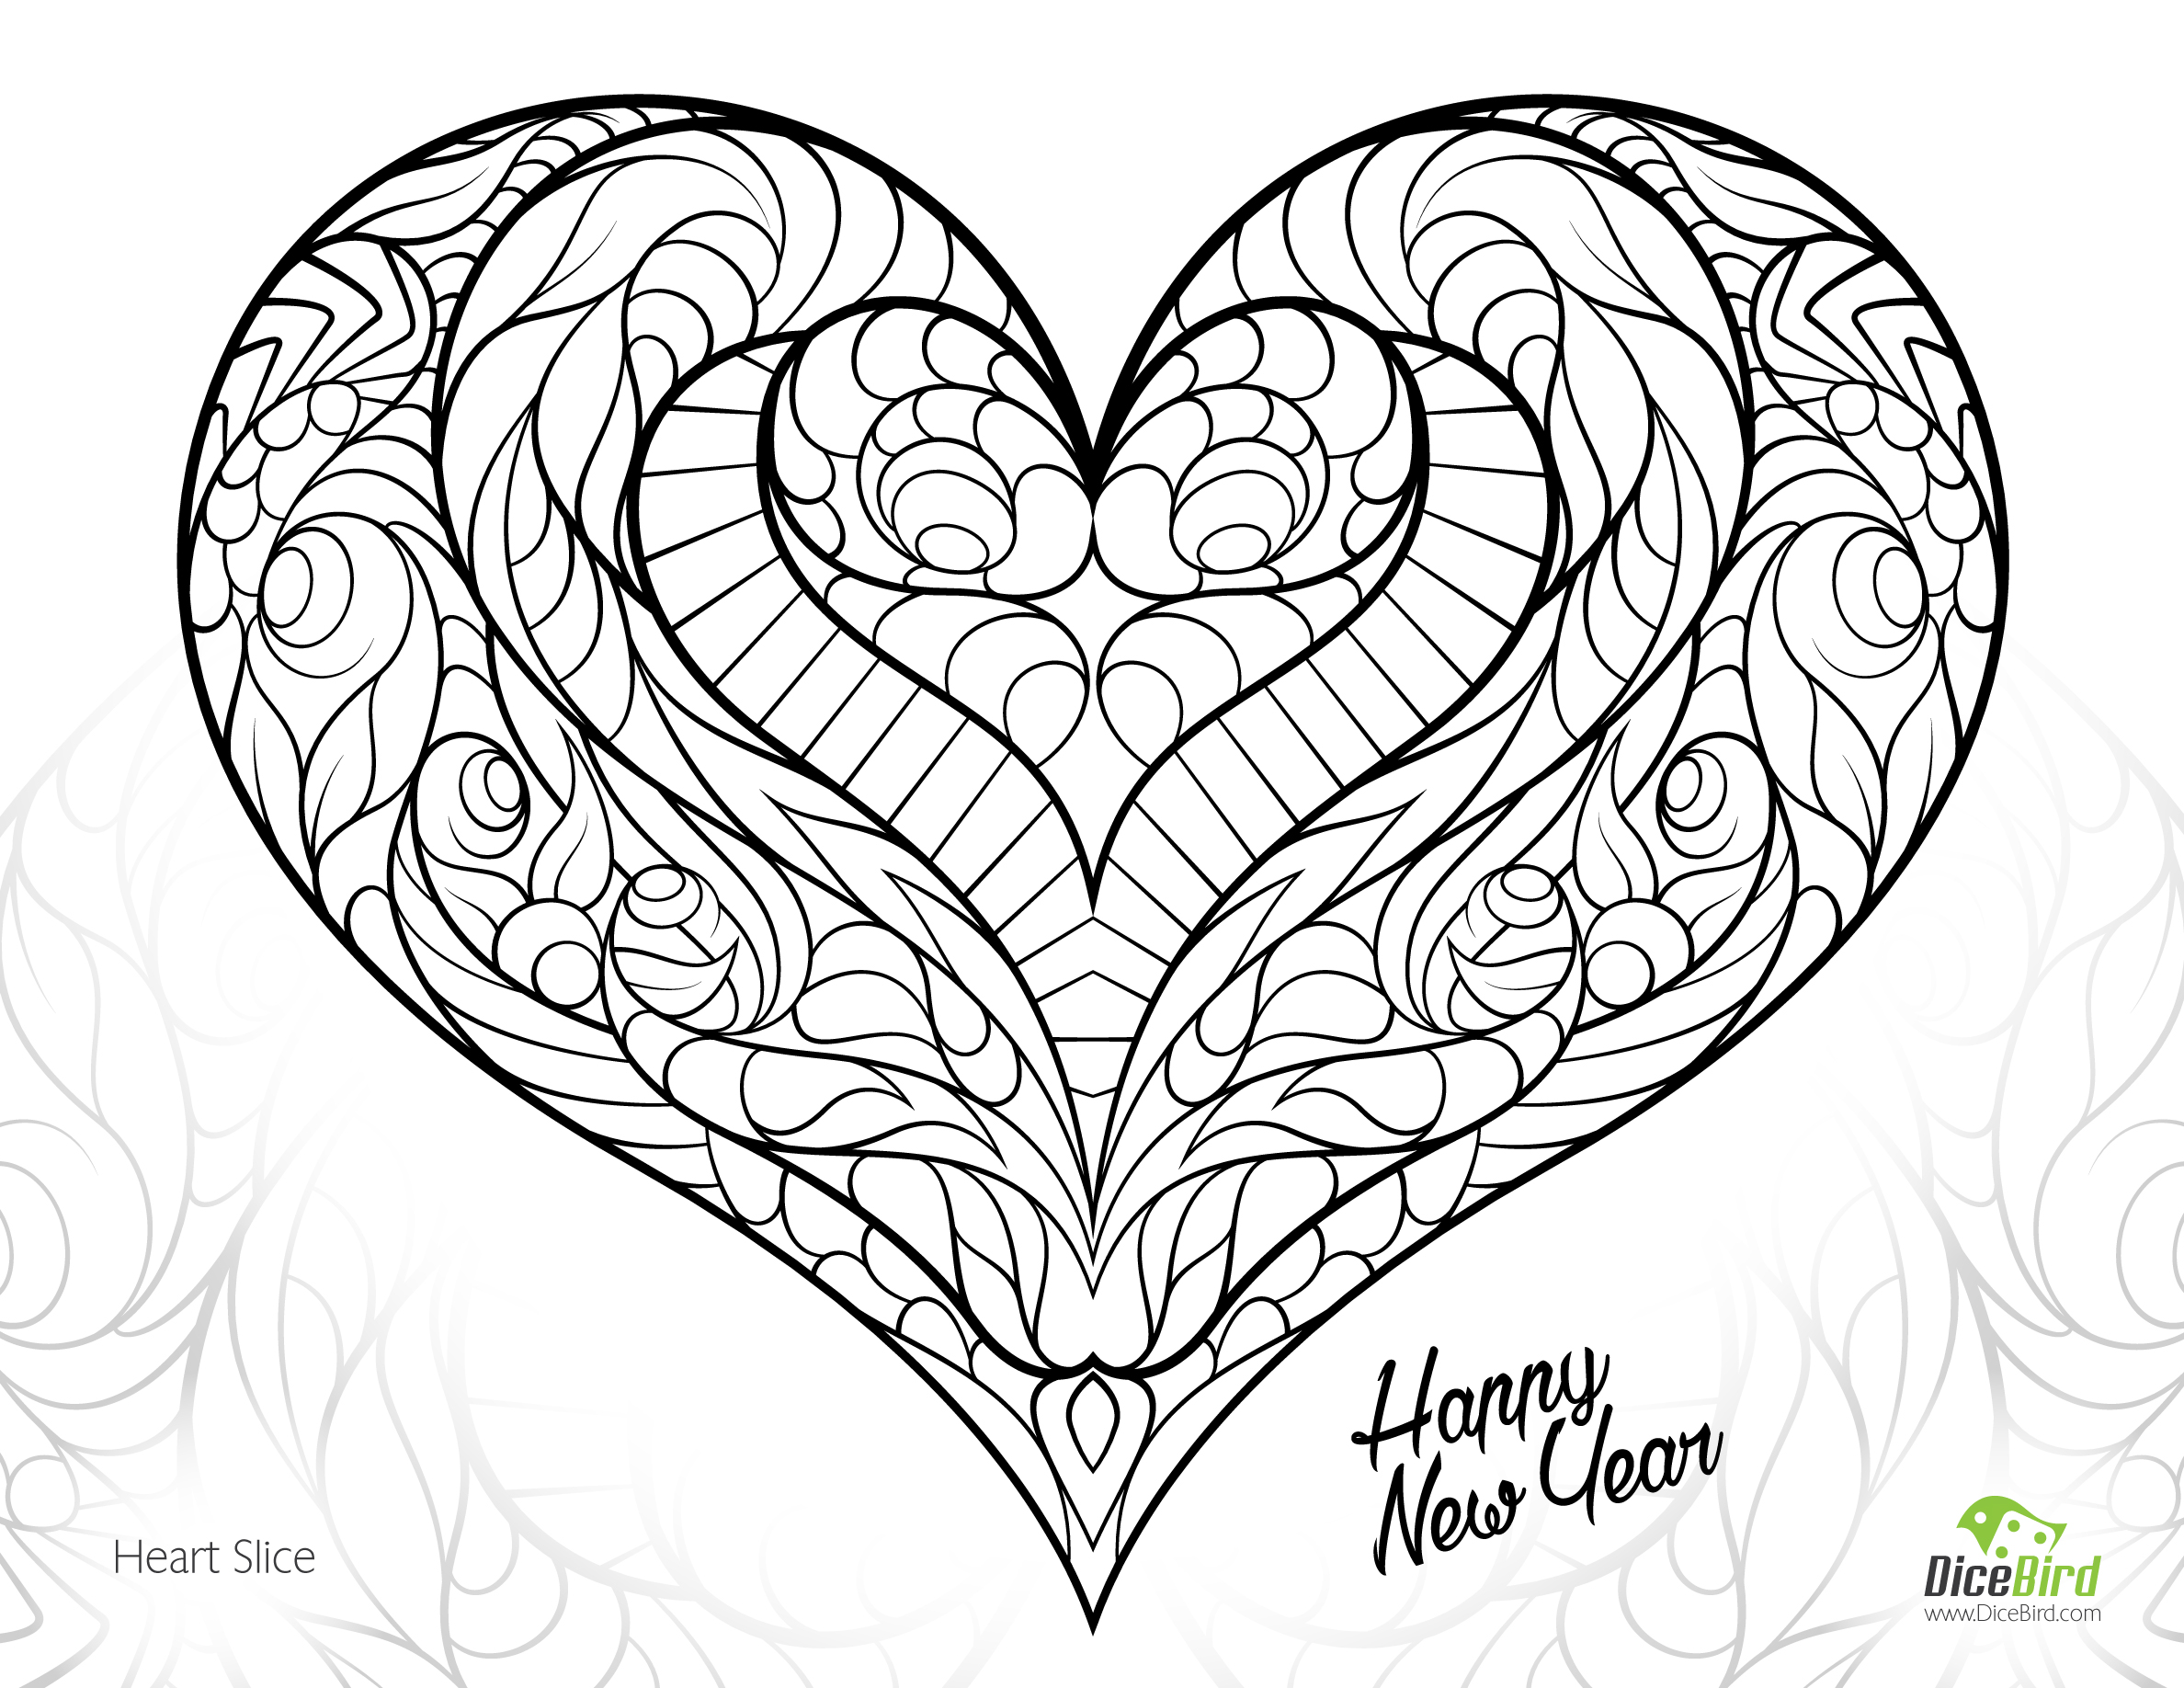 It's just an image of Nifty Adult Coloring Pages Hearts